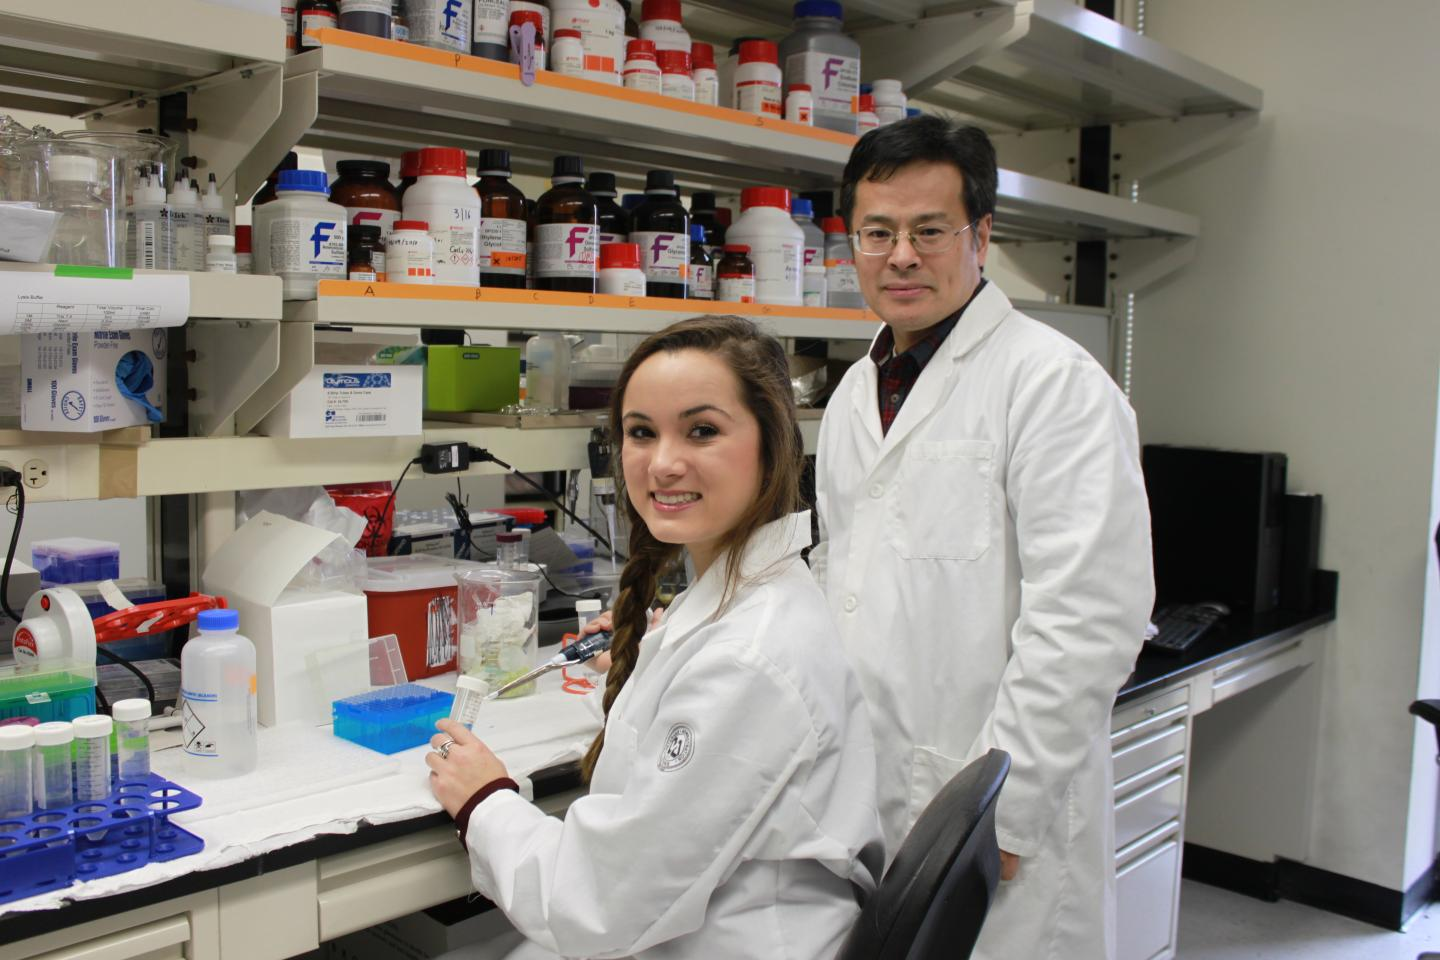 Dr. Guo and Study Co-Investigator